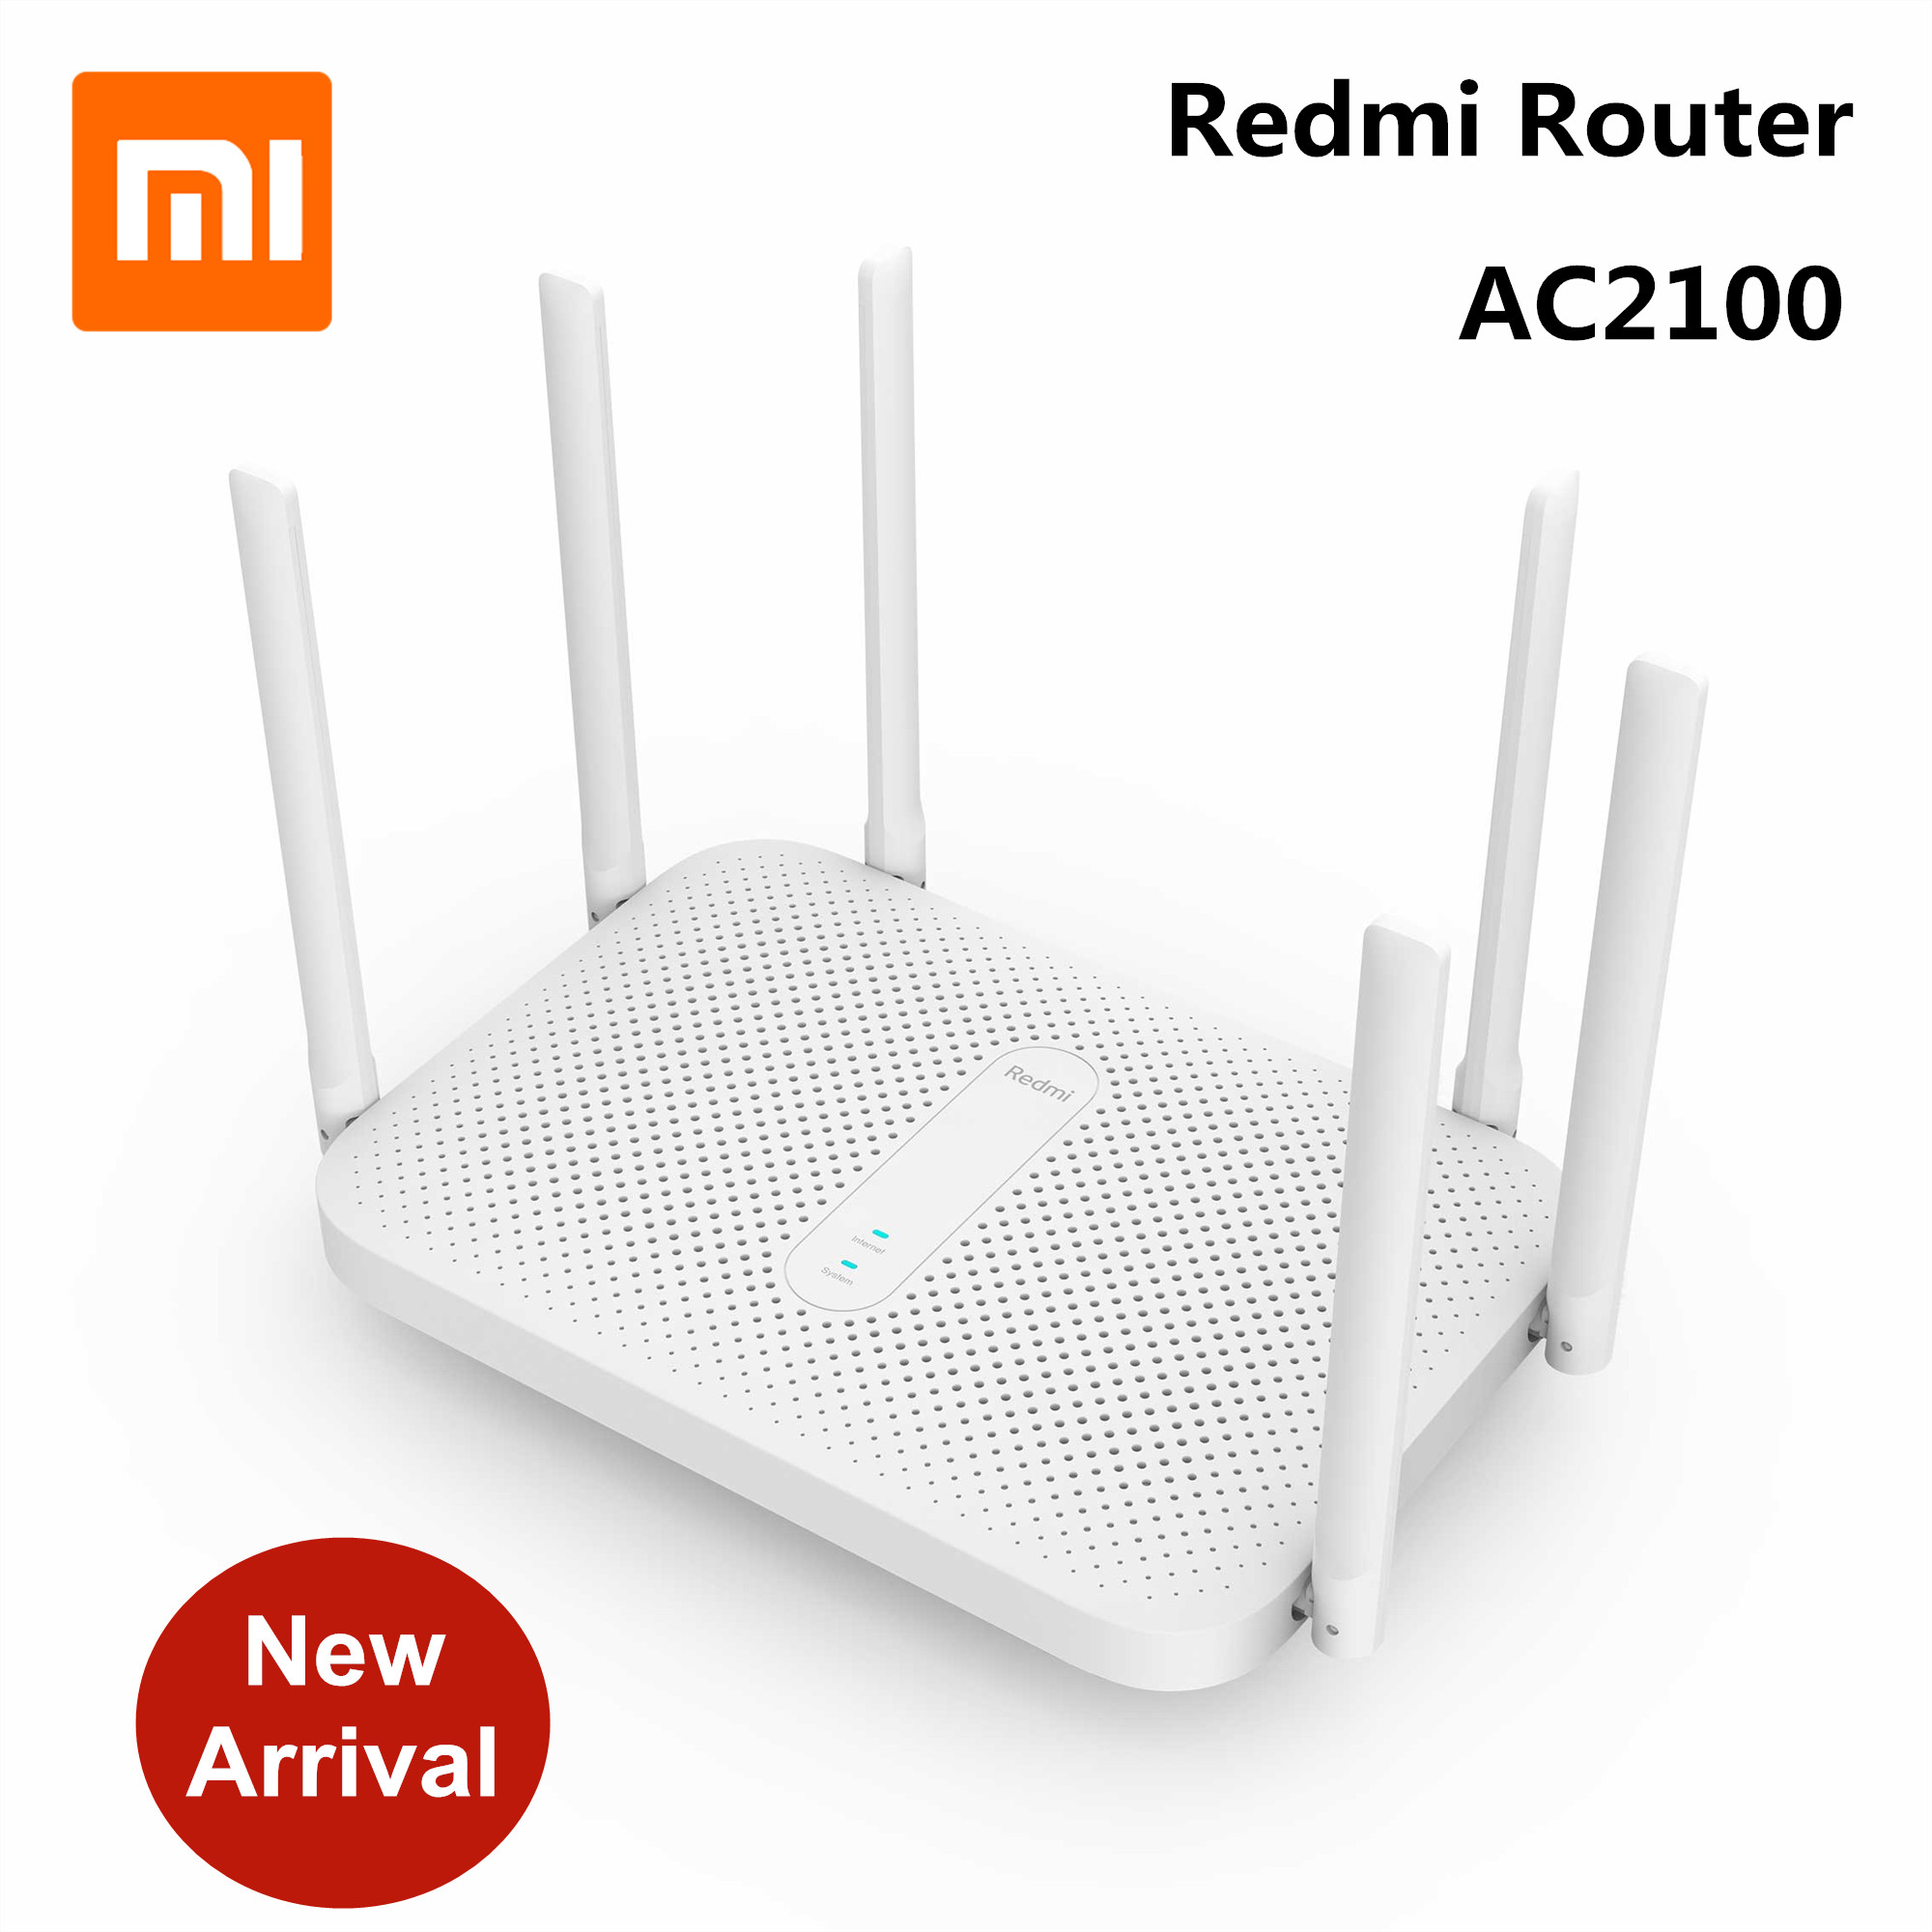 Original Xiaomi Redmi AC2100 Router AC2100 2.4G 5.0GHz 128MB RAM 2033Mbps Wireless Router Wifi Repeater Work with Mijia APP title=